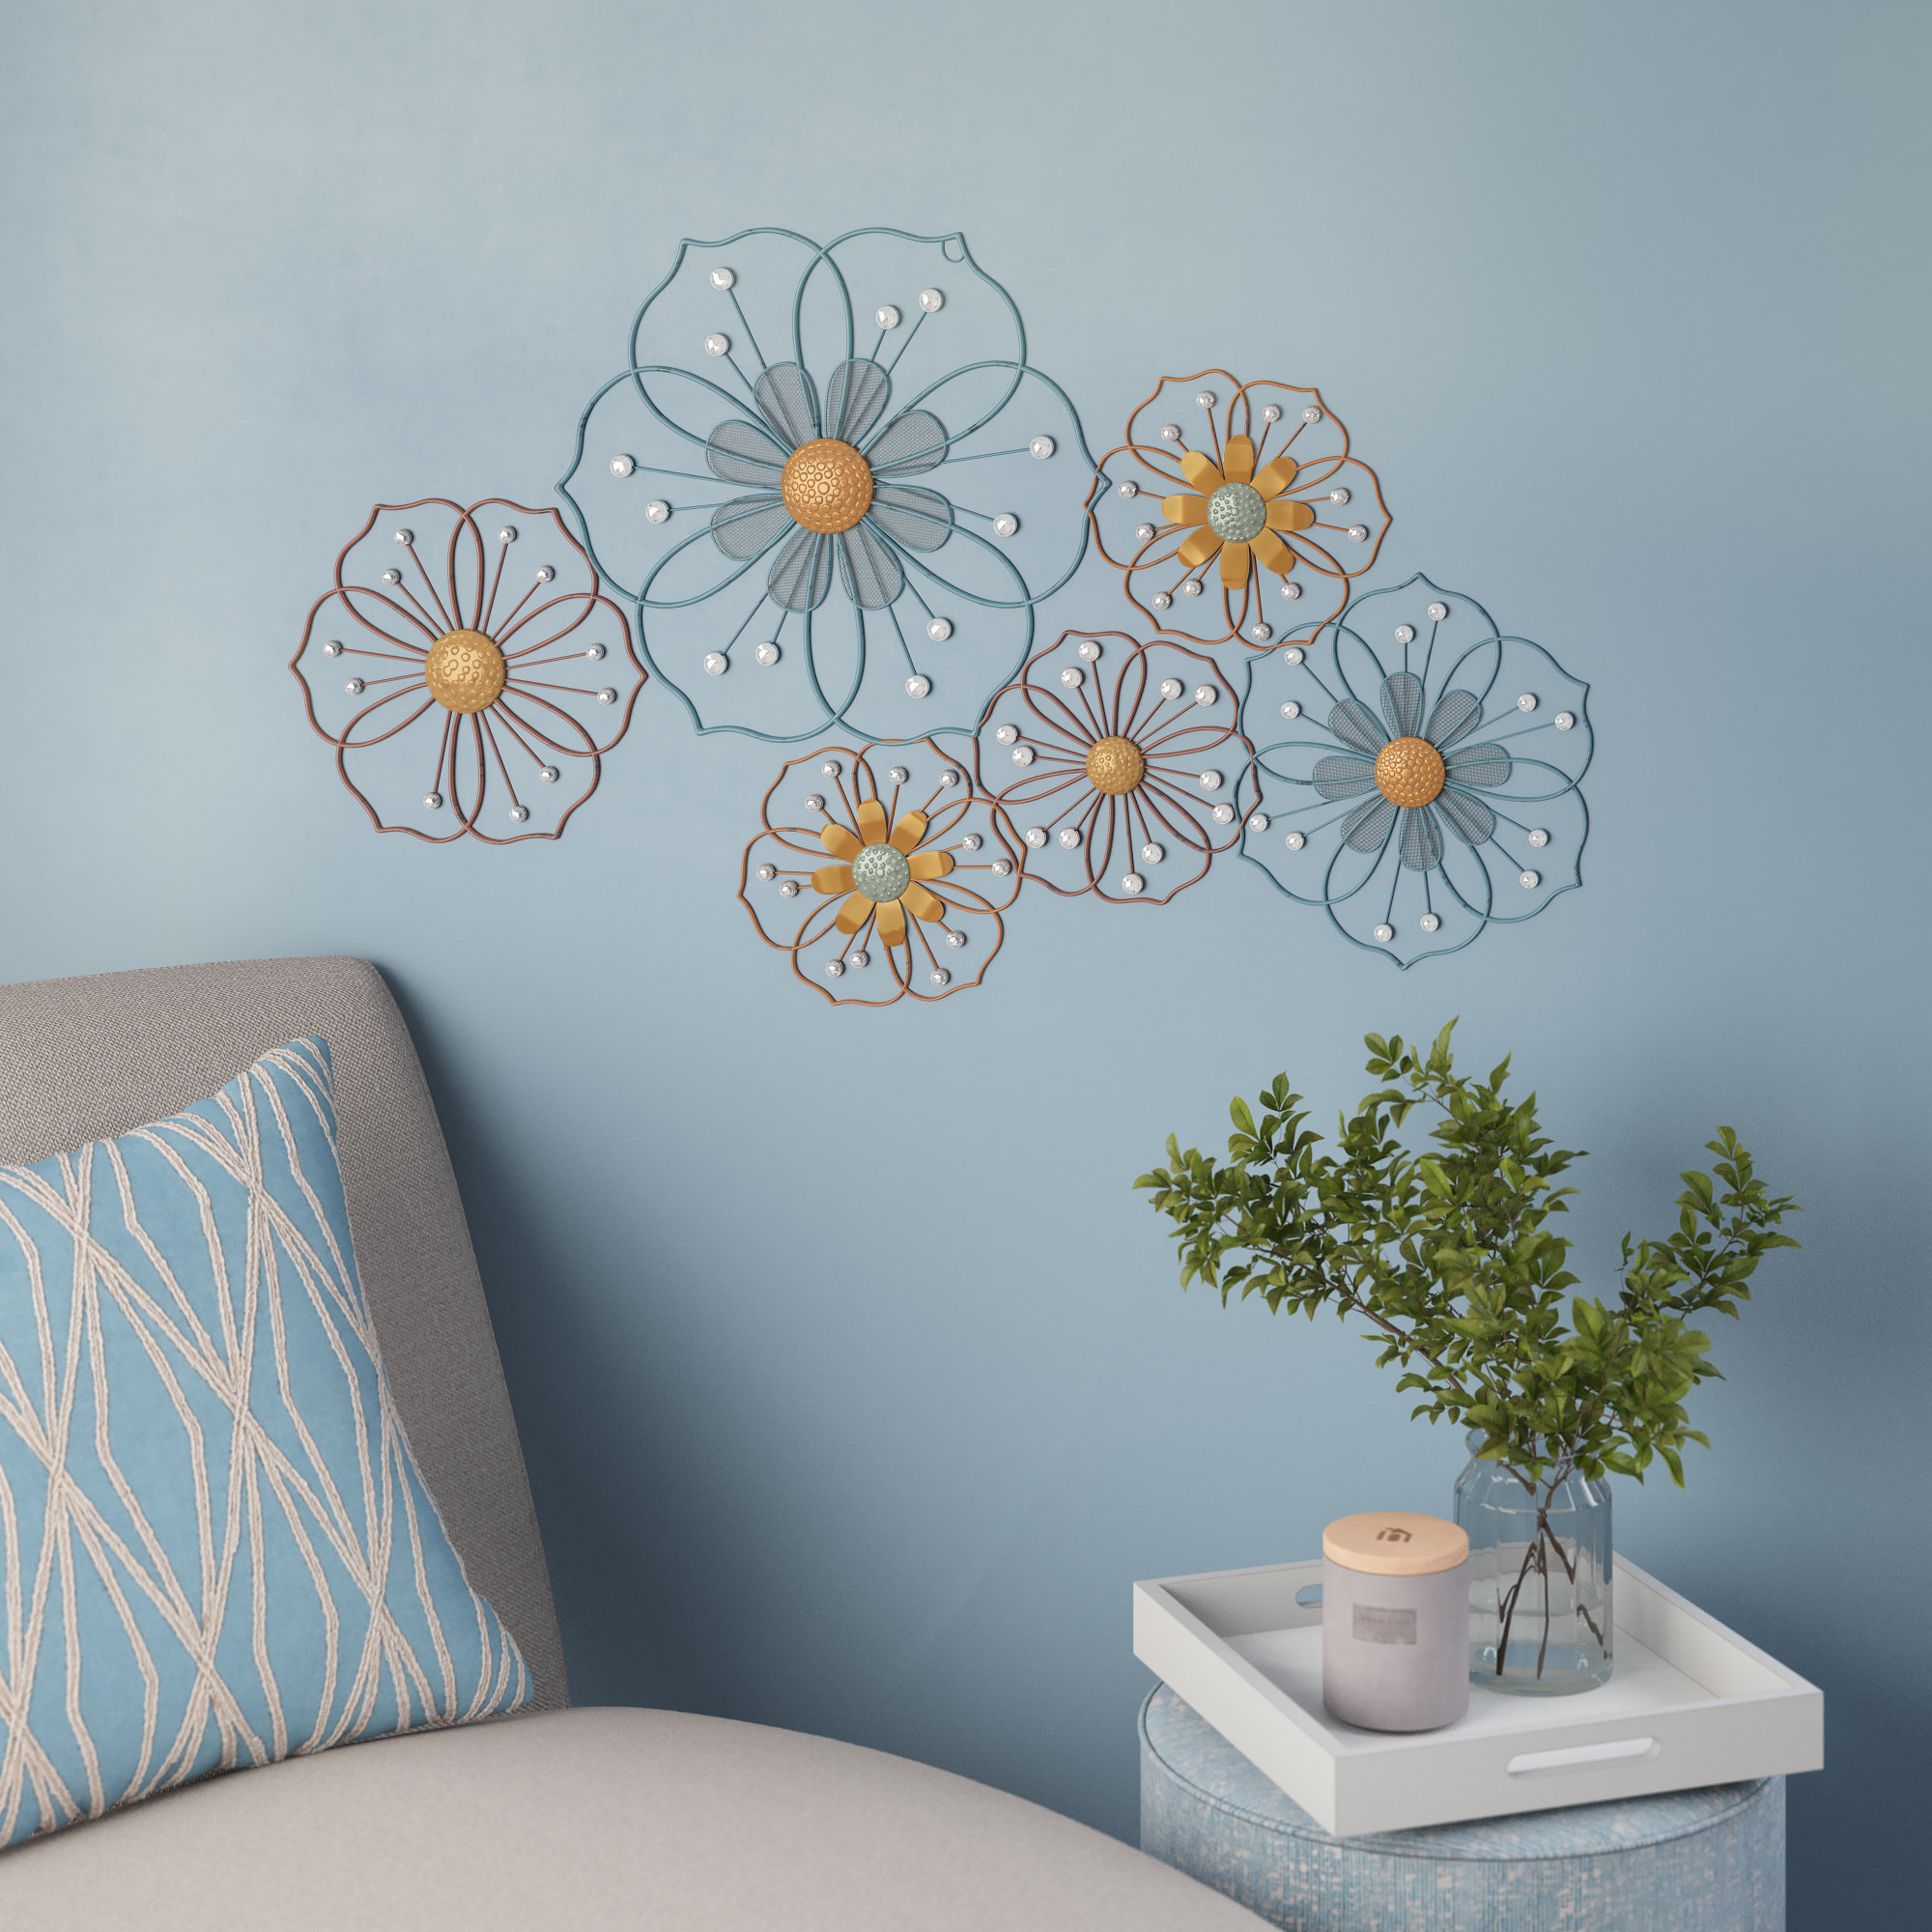 Latest Ila Metal Butterfly Wall Decor In Latitude Run Big But Simple Metal Wall Décor & Reviews (View 6 of 20)